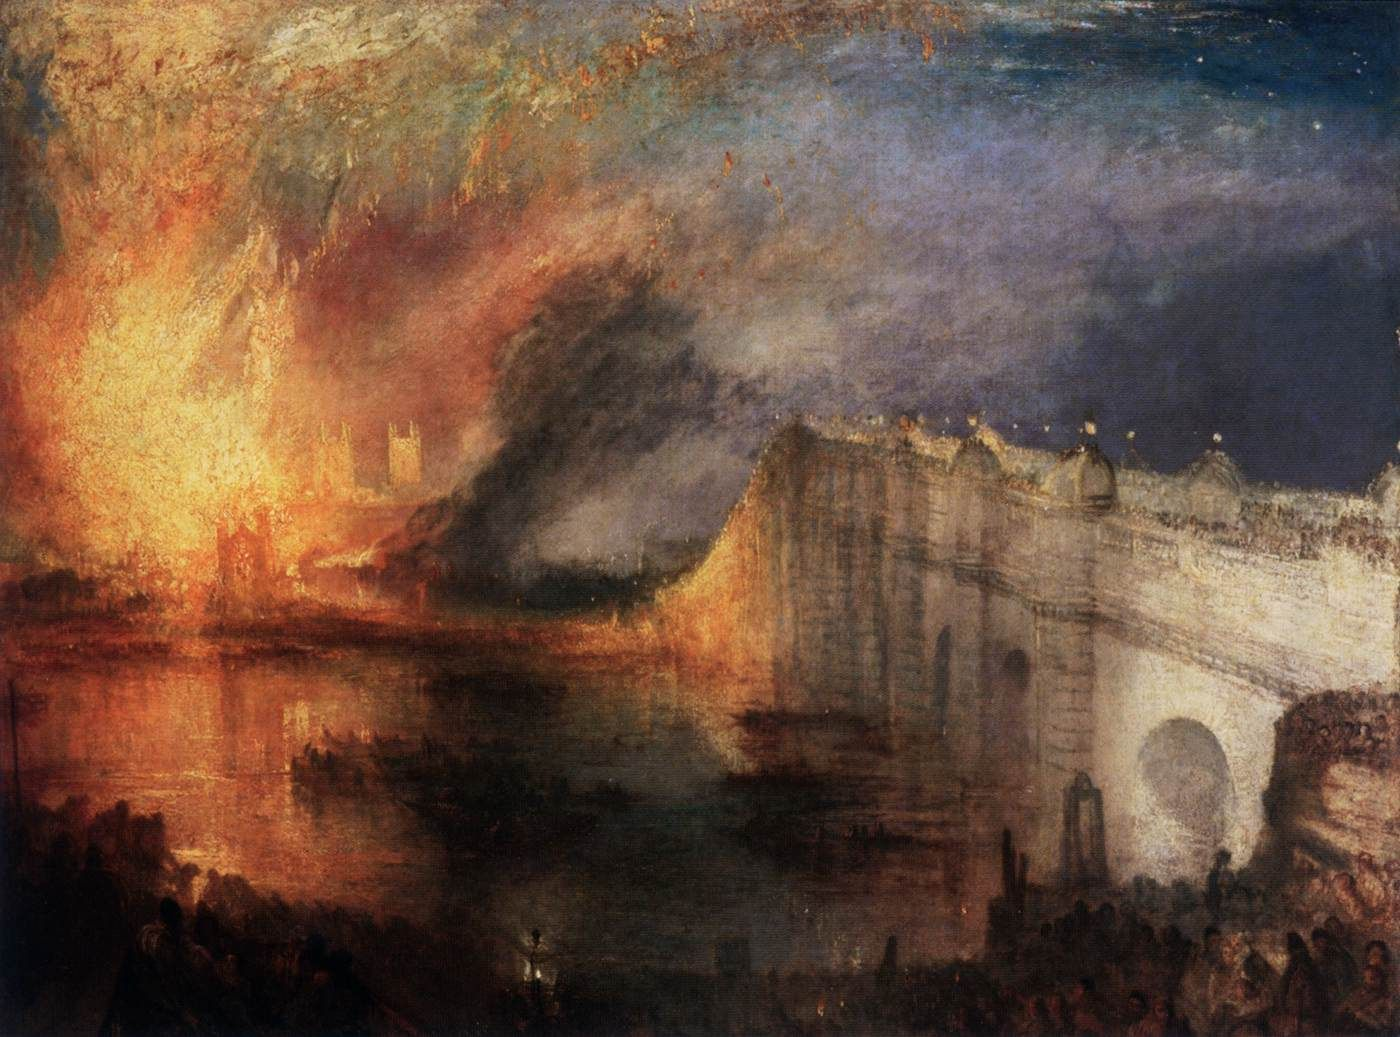 The burning of the parliament building essay